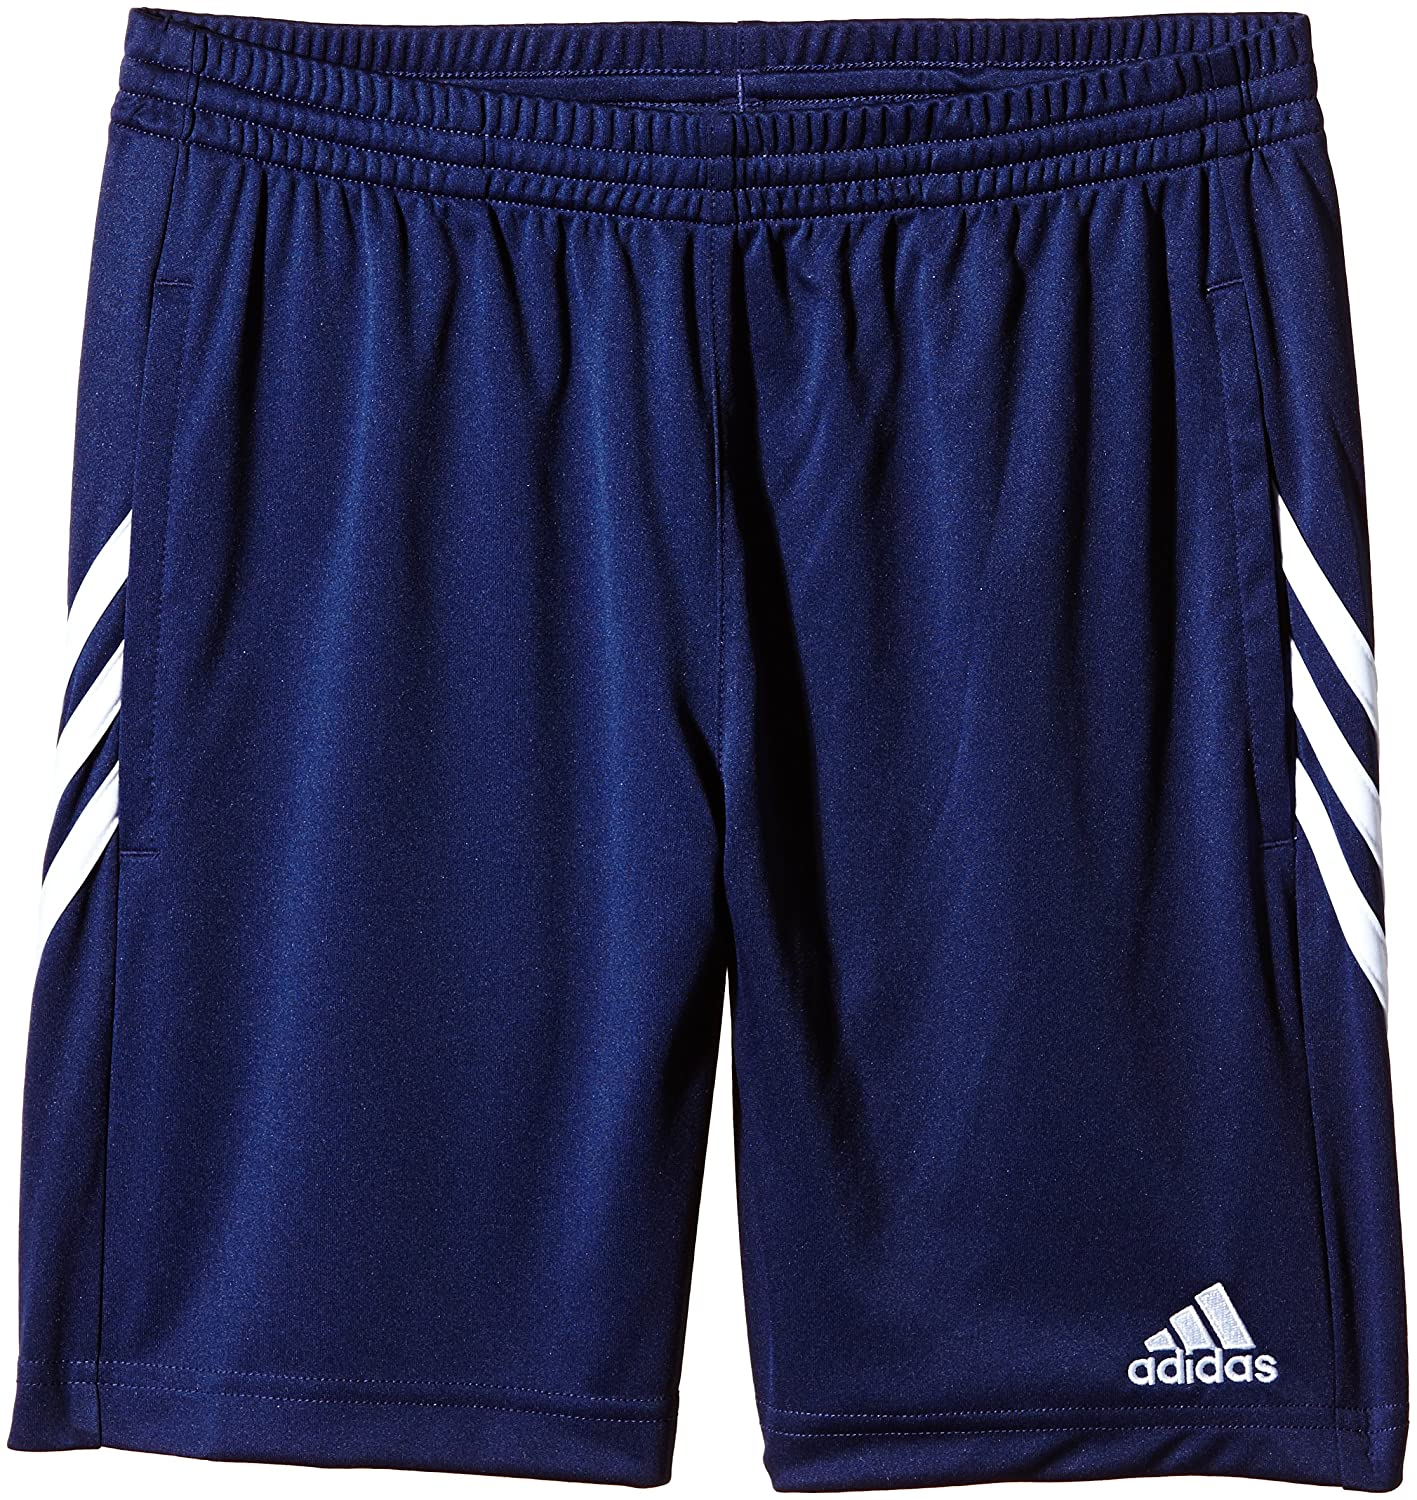 86fdb56c Adidas Boys Sereno14 Training Shorts - New Navy/White, Size 128 ...